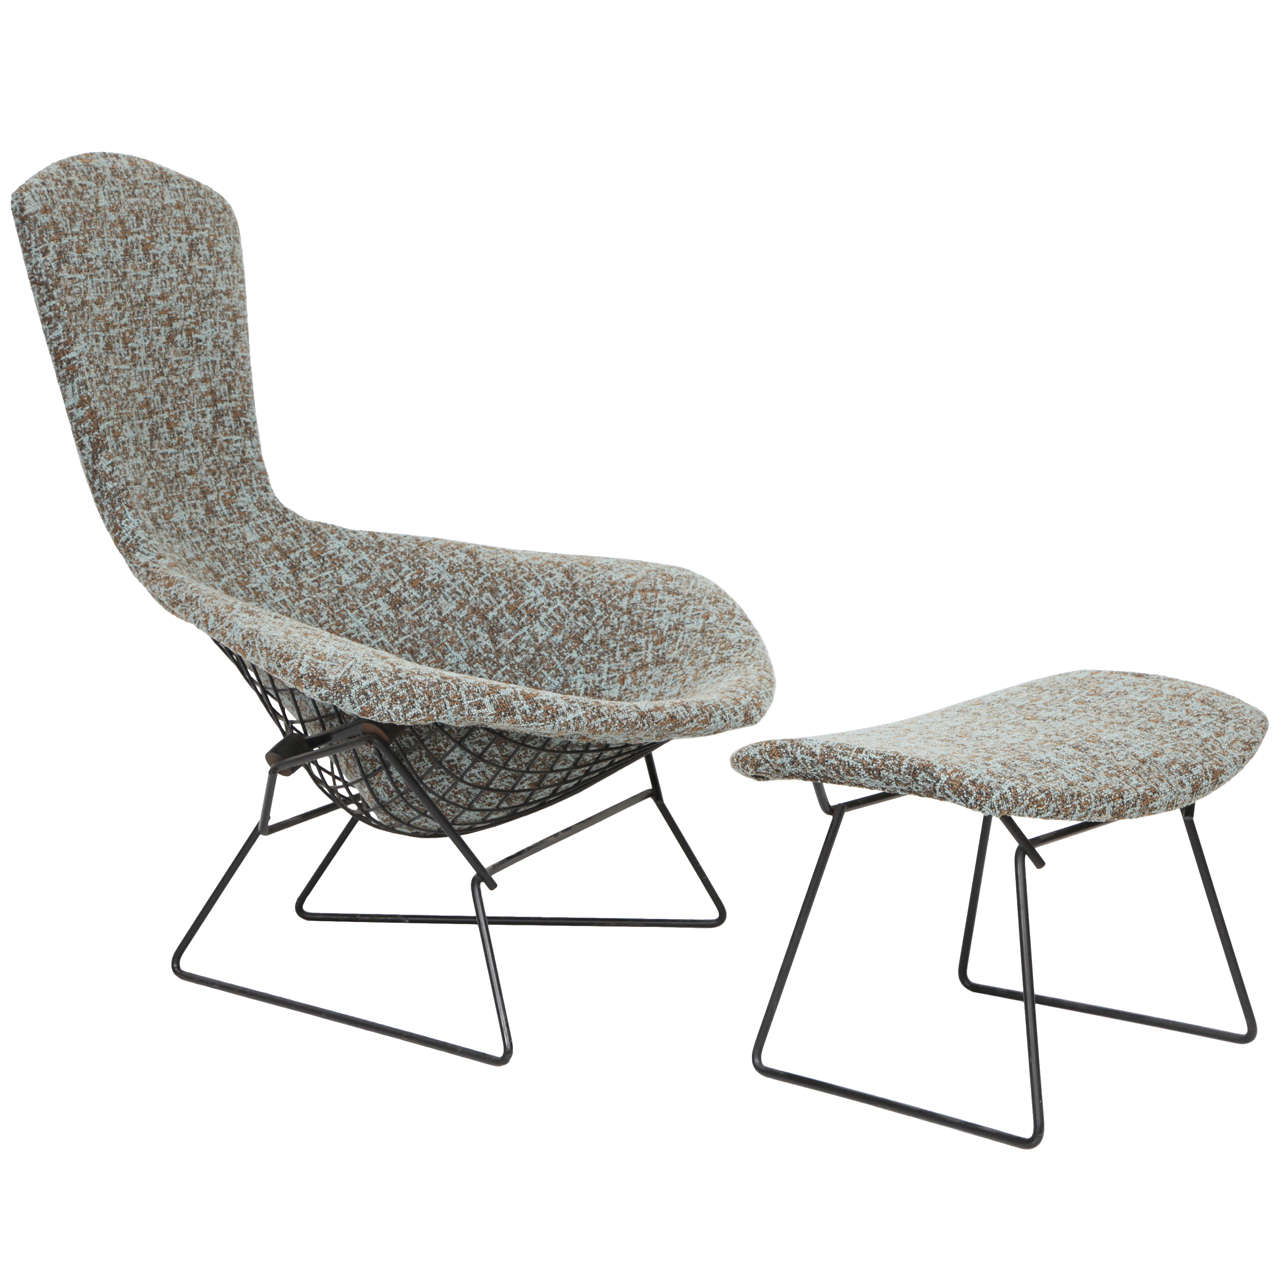 harry bertoia bird chair and ottoman for knoll at stdibs -